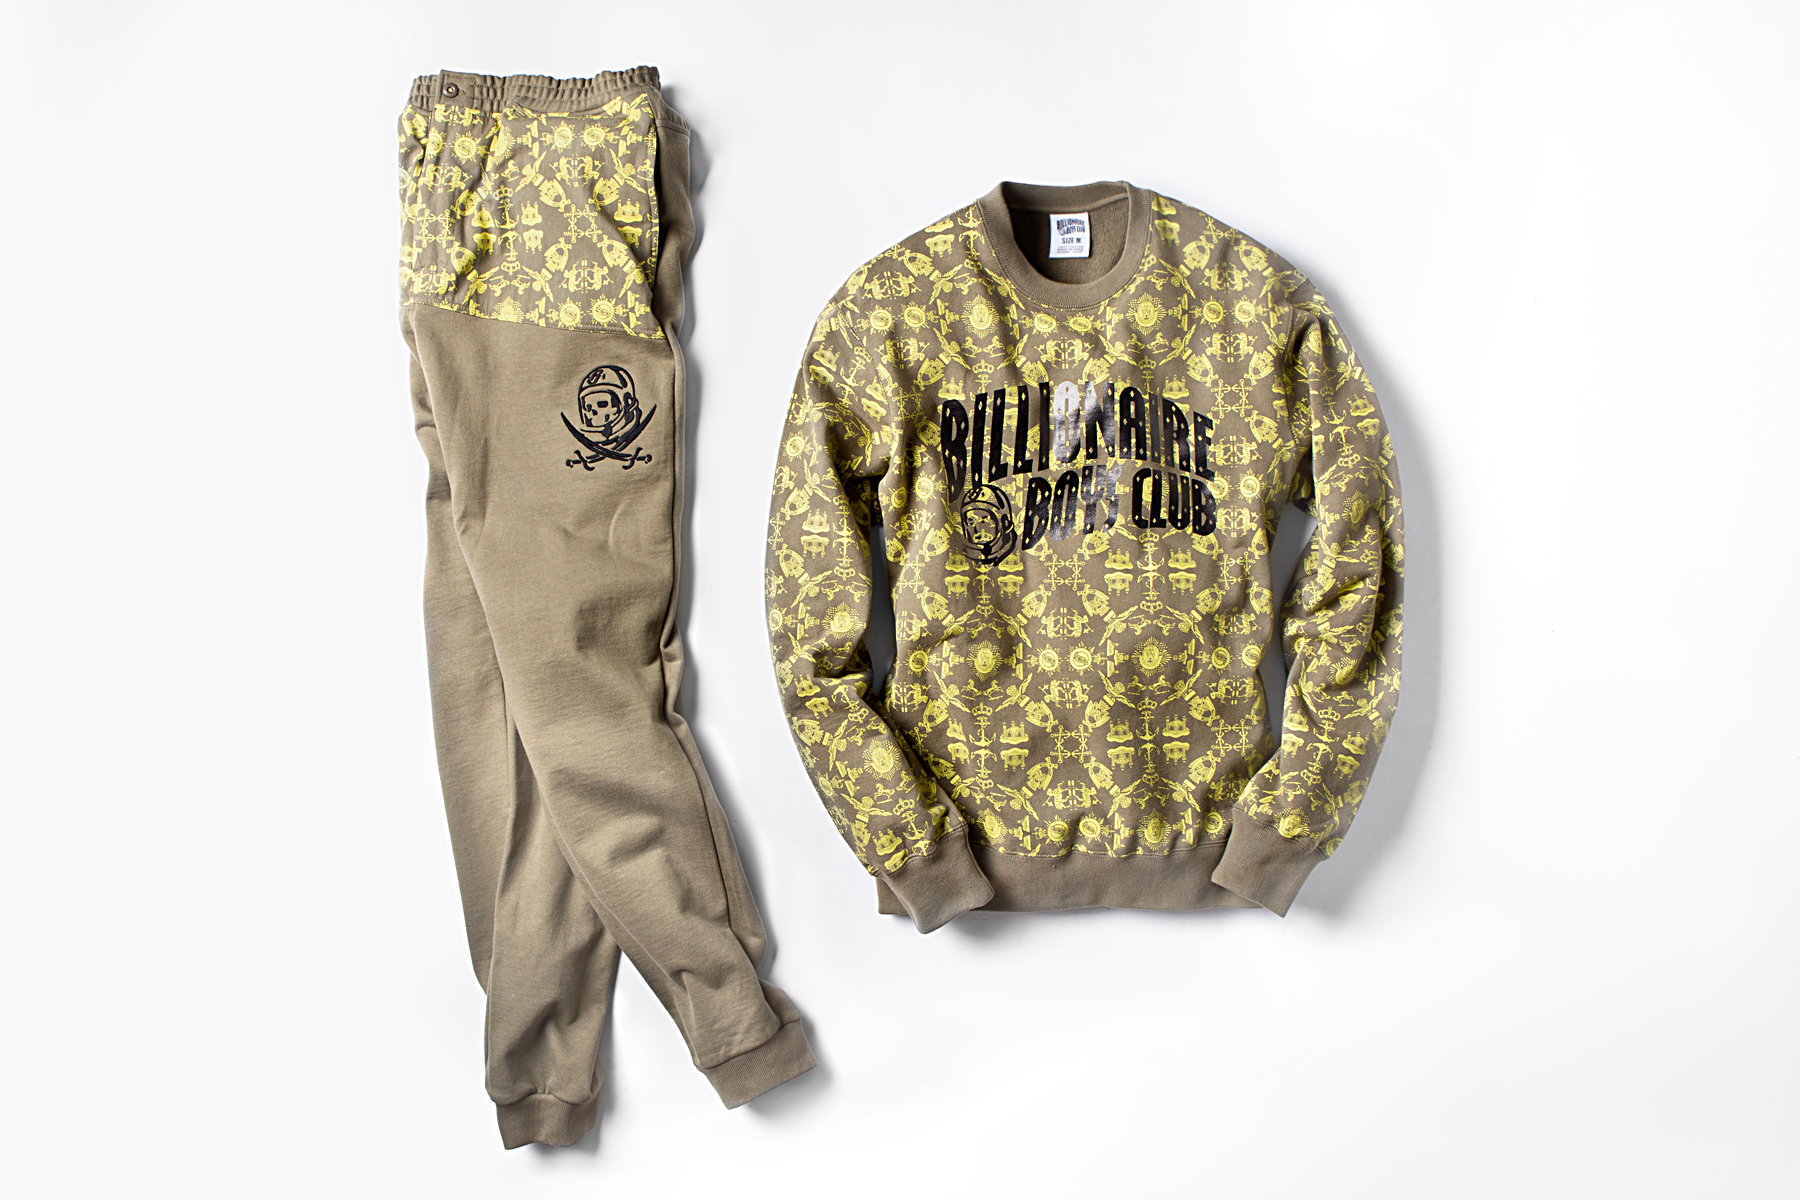 billionaire boys club 2014 spring summer collection